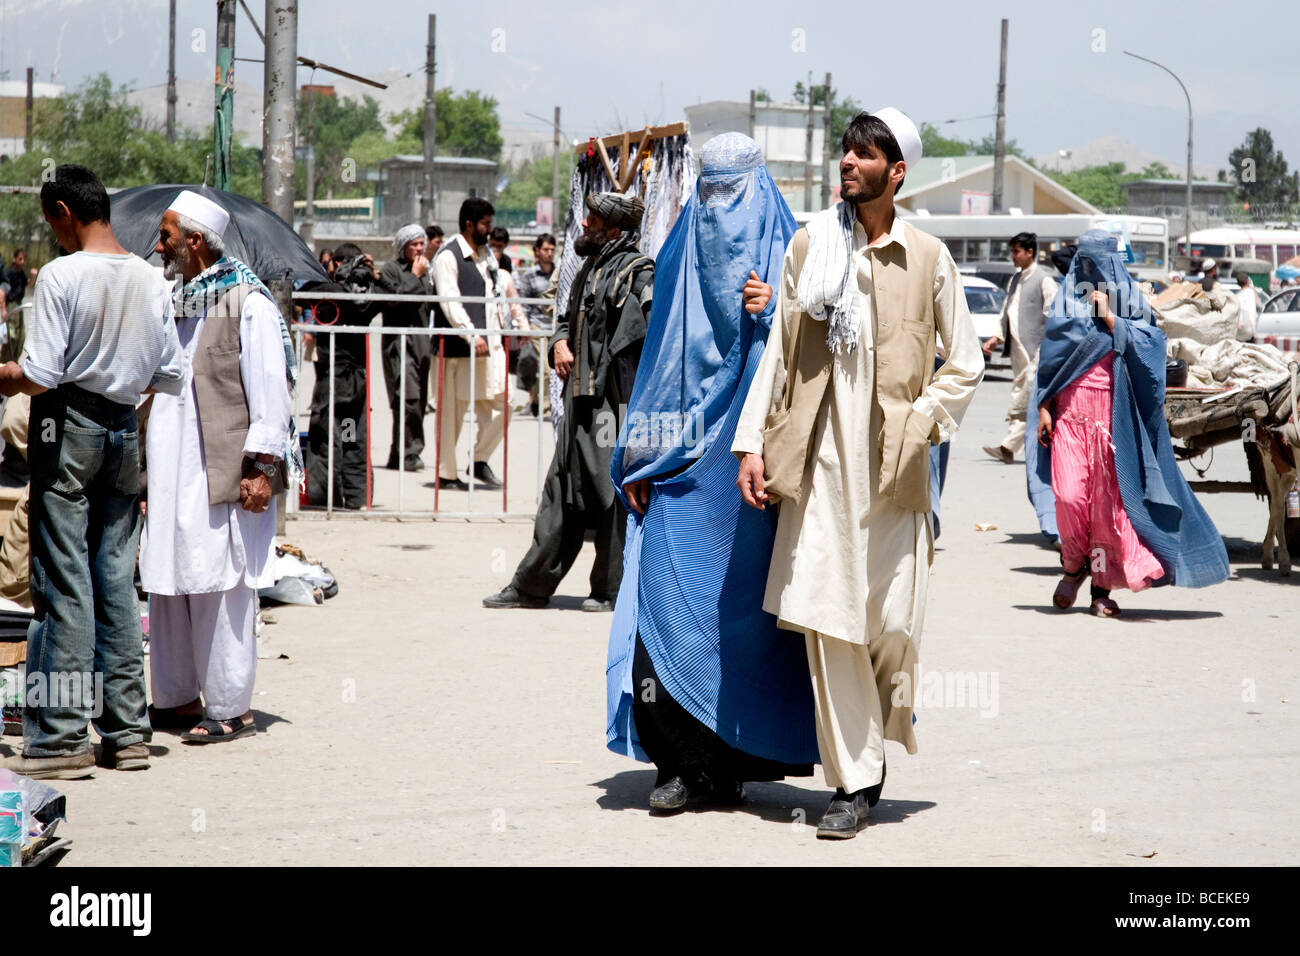 A young couple, the woman in the standard blue burqa, walking a busy street in Kabul, Afghanistan's capital - Stock Image